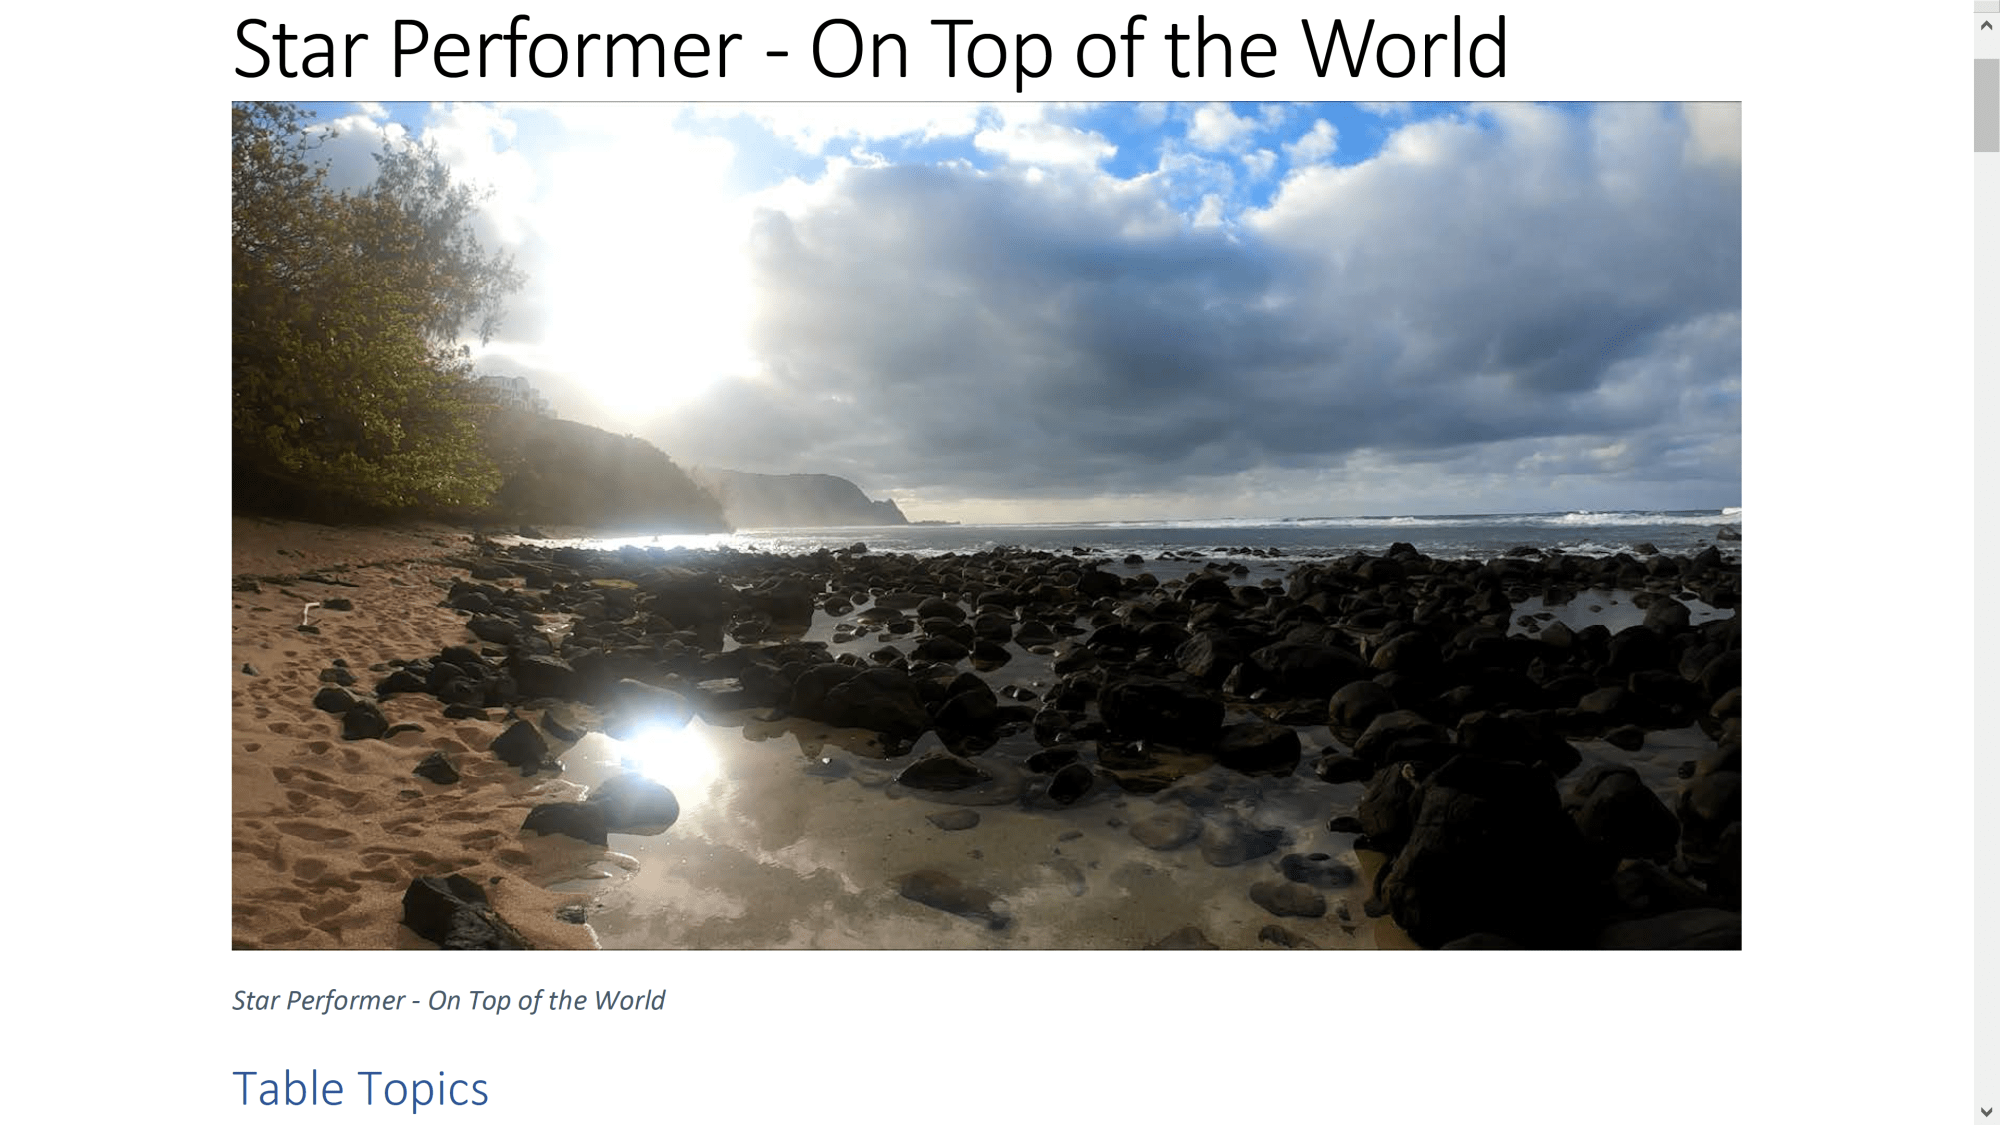 Star Performer - On Top of the World Table Topics. Copyright 2018 by Steve J Davis. All Rights Reserved. https://starperformer.info